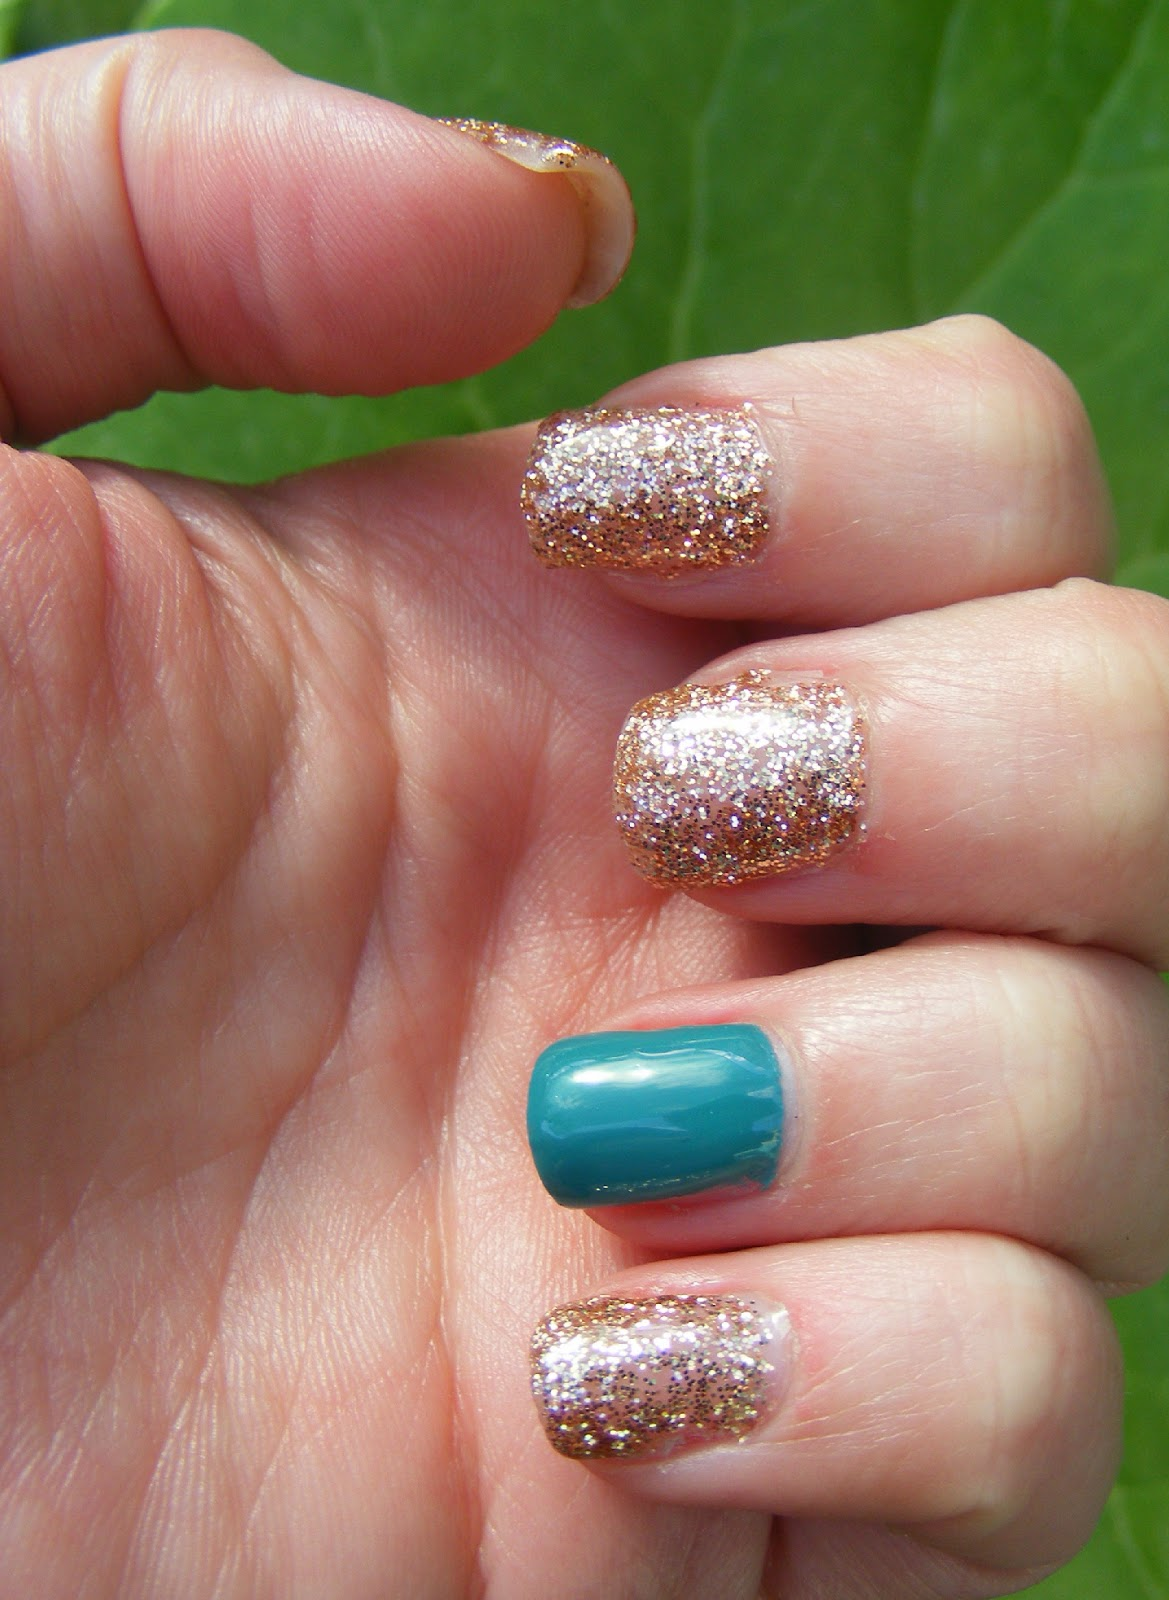 Nails Of The Day (NOTD): Glitter Gel Manicure